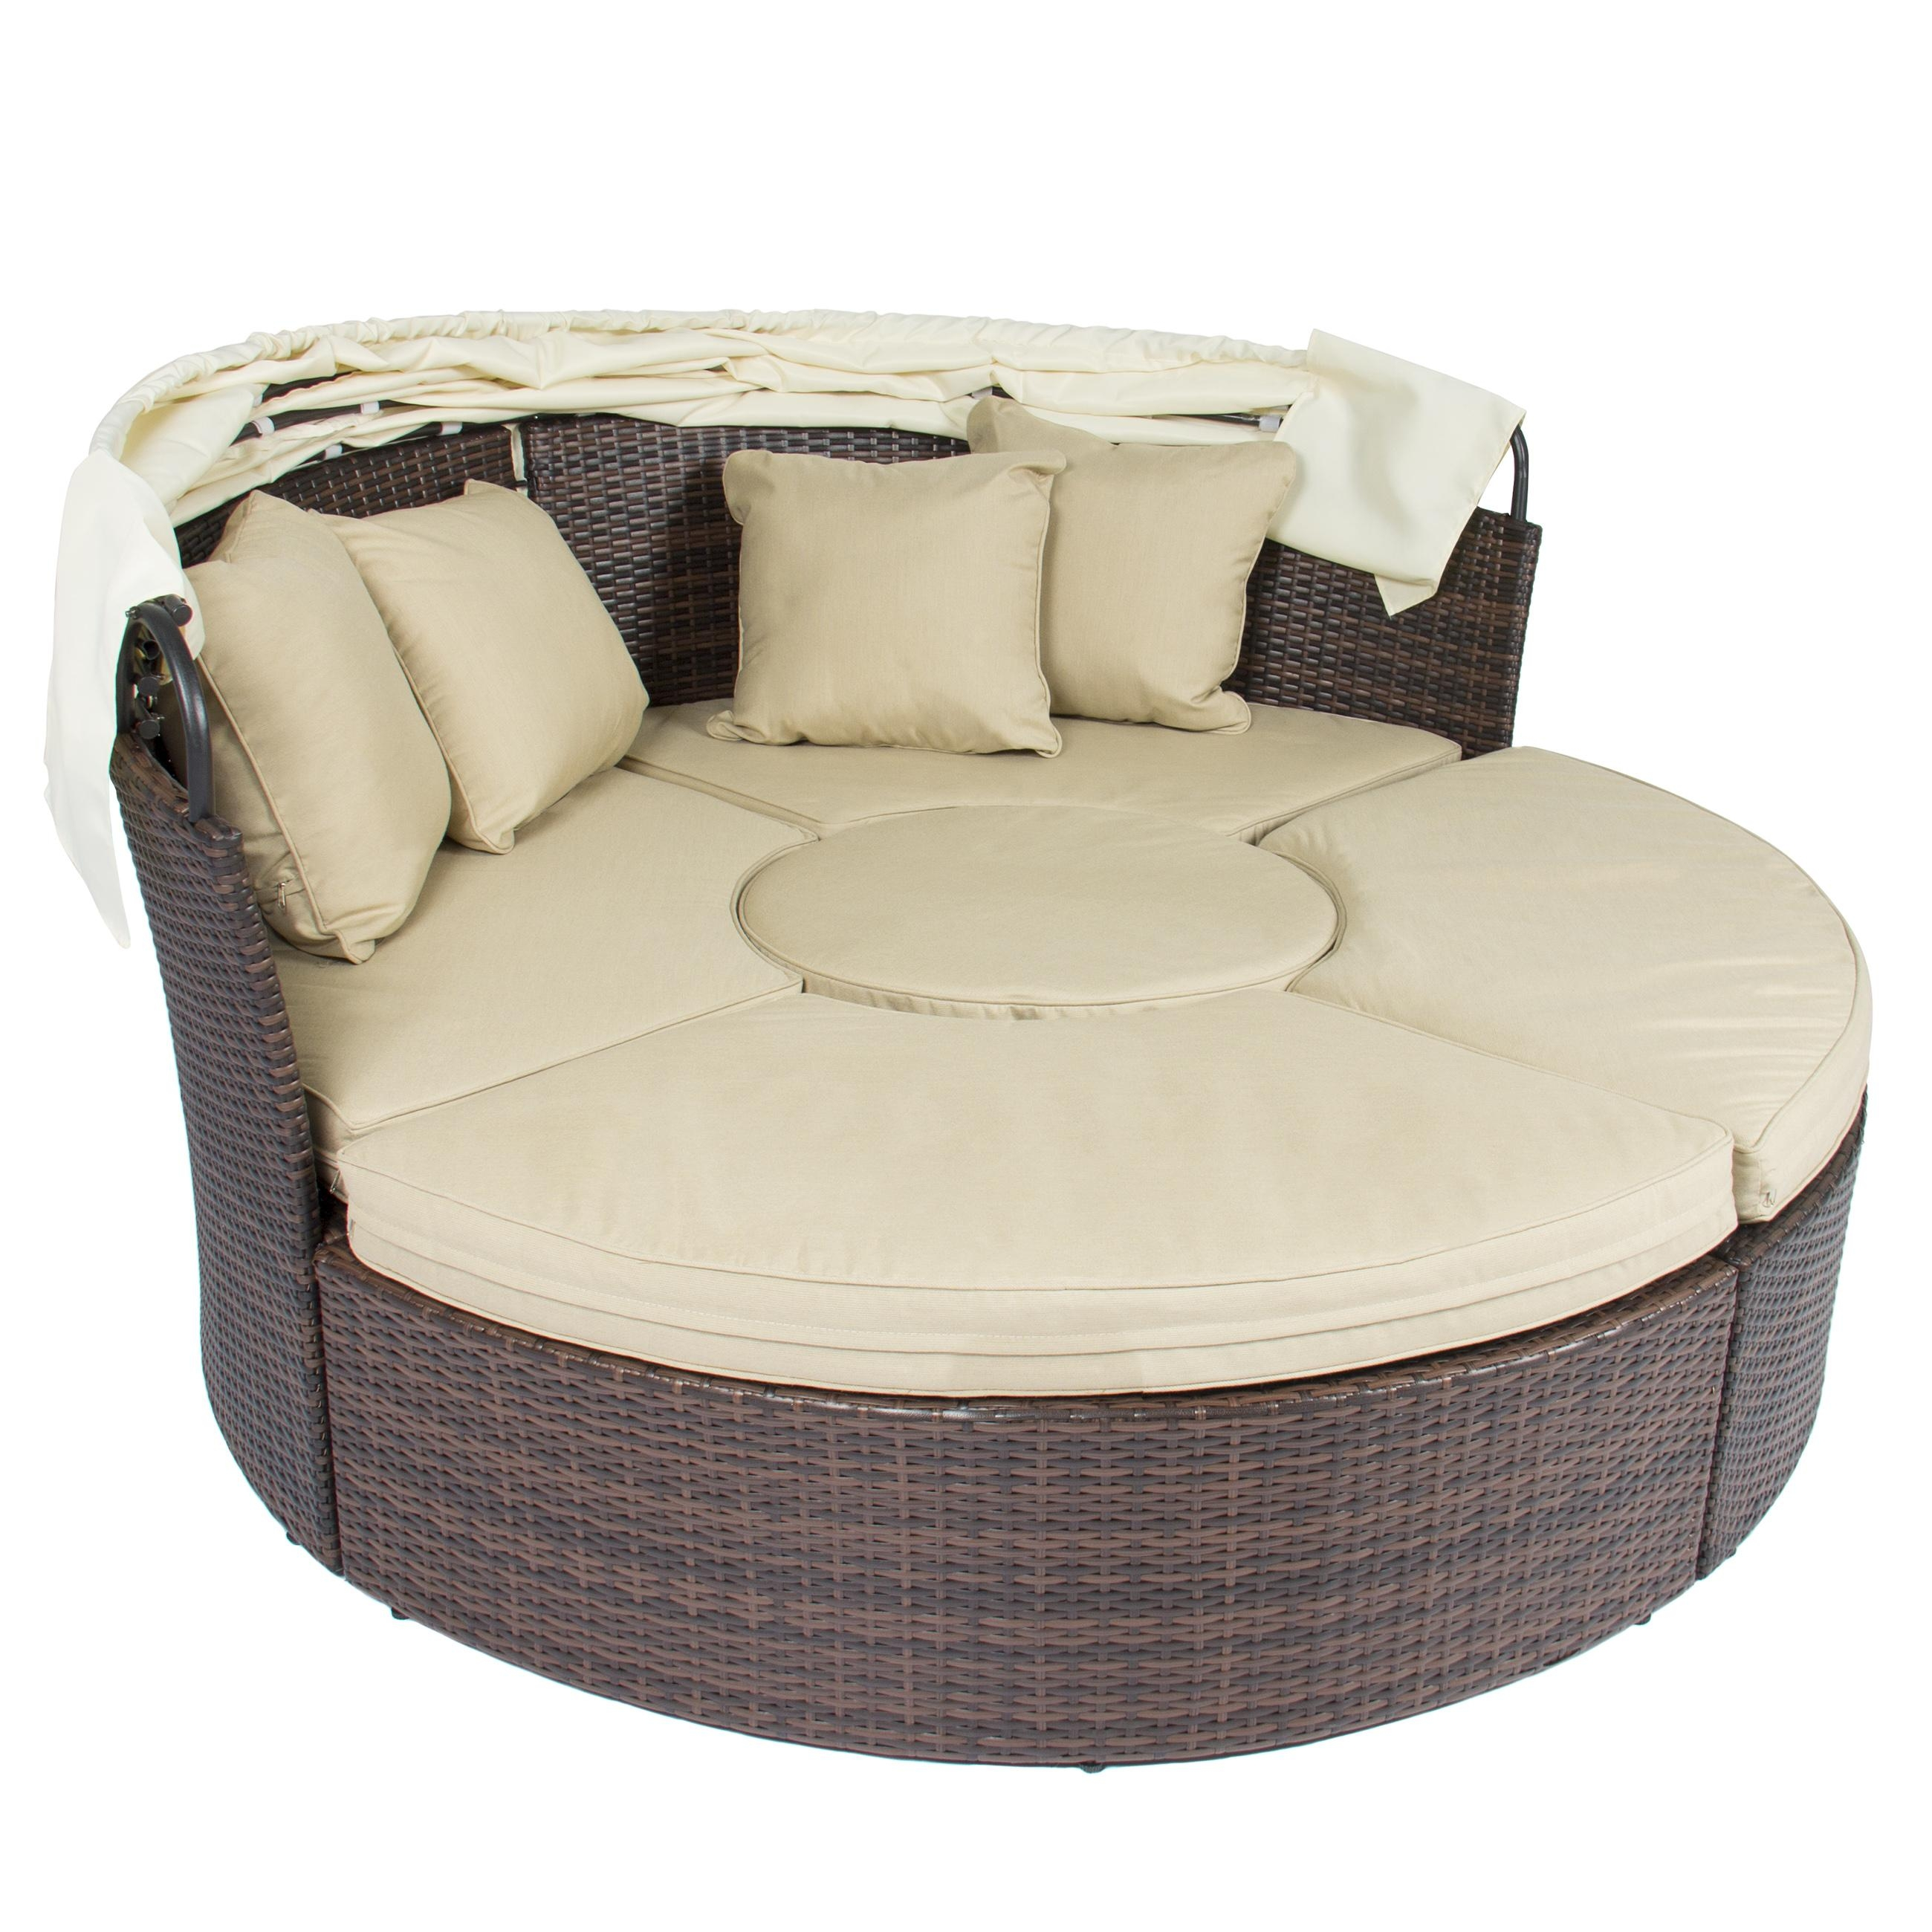 Sofas Center : Round Sofa Large Curved Sectional Astoria Throughout Round Sofas (View 14 of 20)